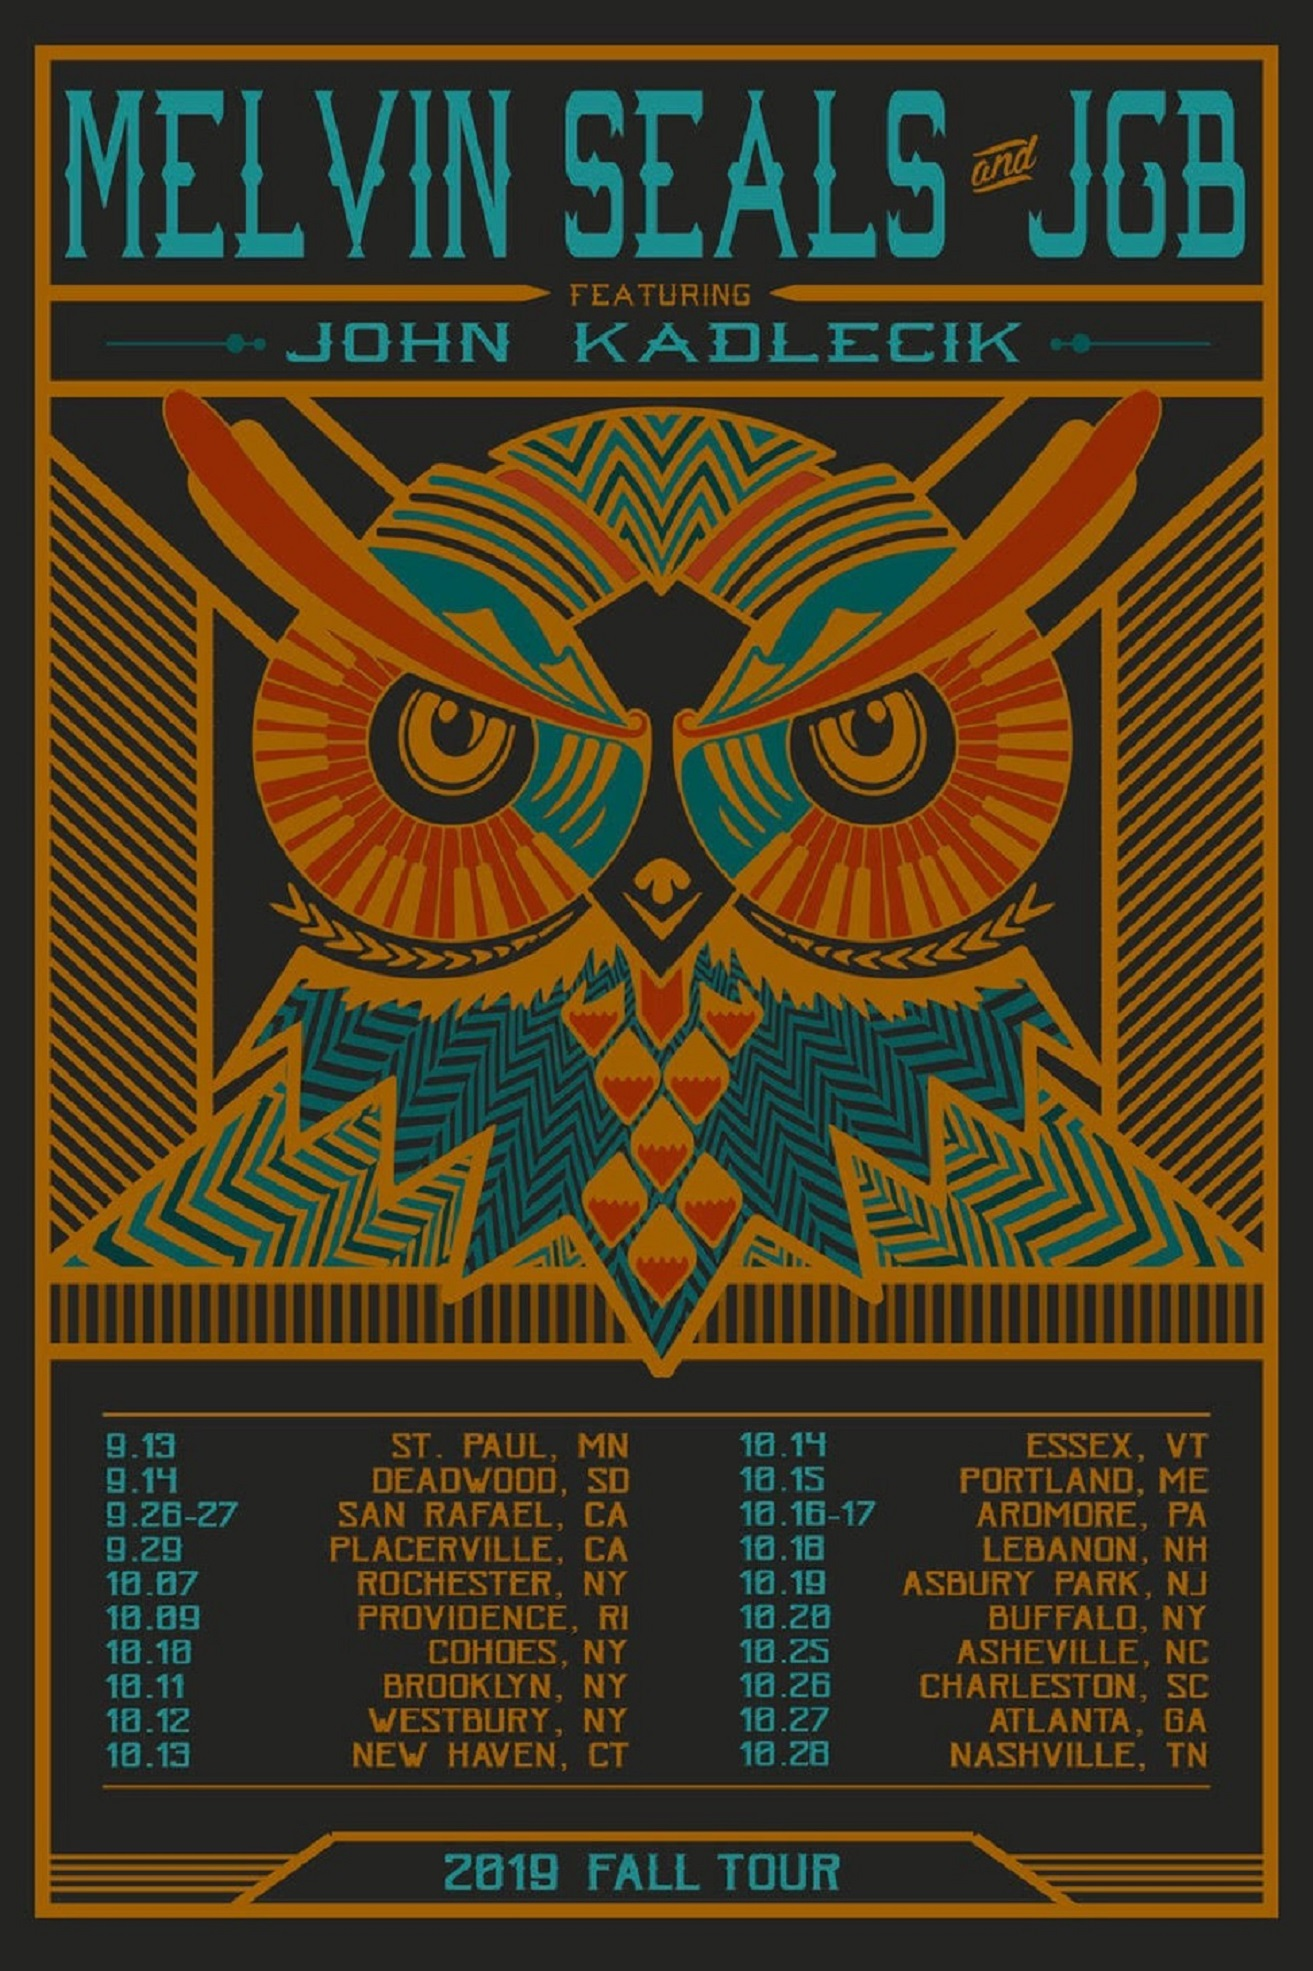 JGB Band with John K Announce Fall Tour